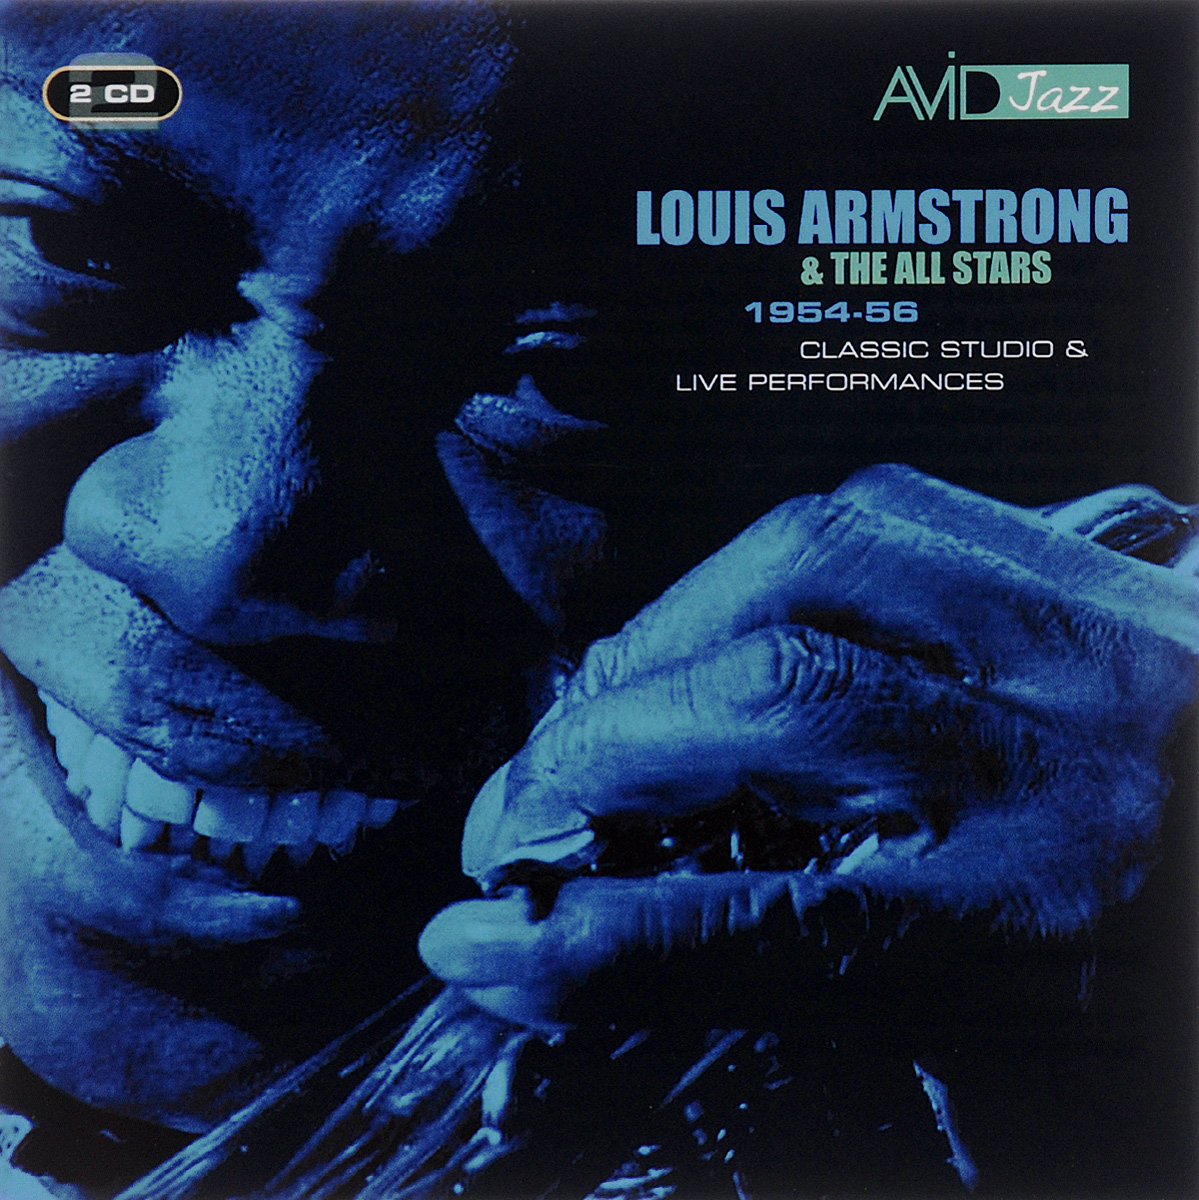 Луи Армстронг,Louis Armstrong & The All Stars Avid Jazz. Louis Armstrong, The All Stars. Louis Armstrong & The All Stars 1954-56 (2 CD) цены онлайн